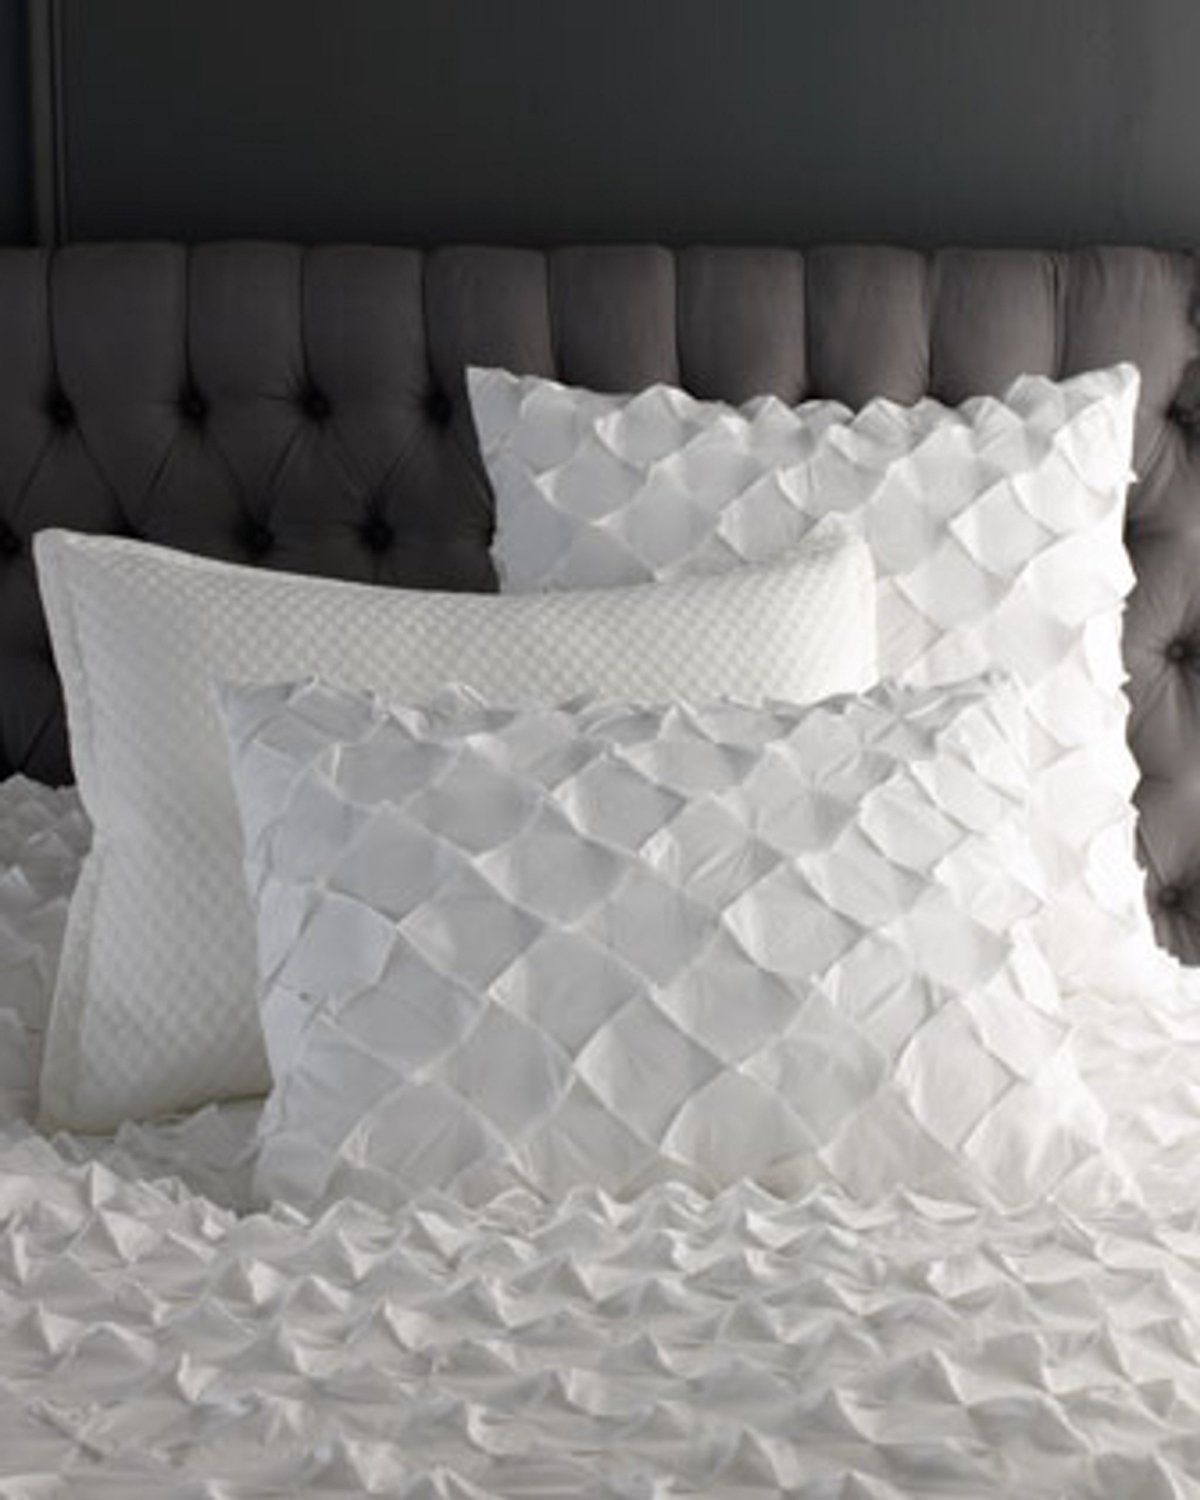 Jersey bed linen online from home republic quilt cover bed linen jersey bed linen online from home republic quilt cover bed linen pinterest bed linen online bed linen and quilt cover gamestrikefo Images